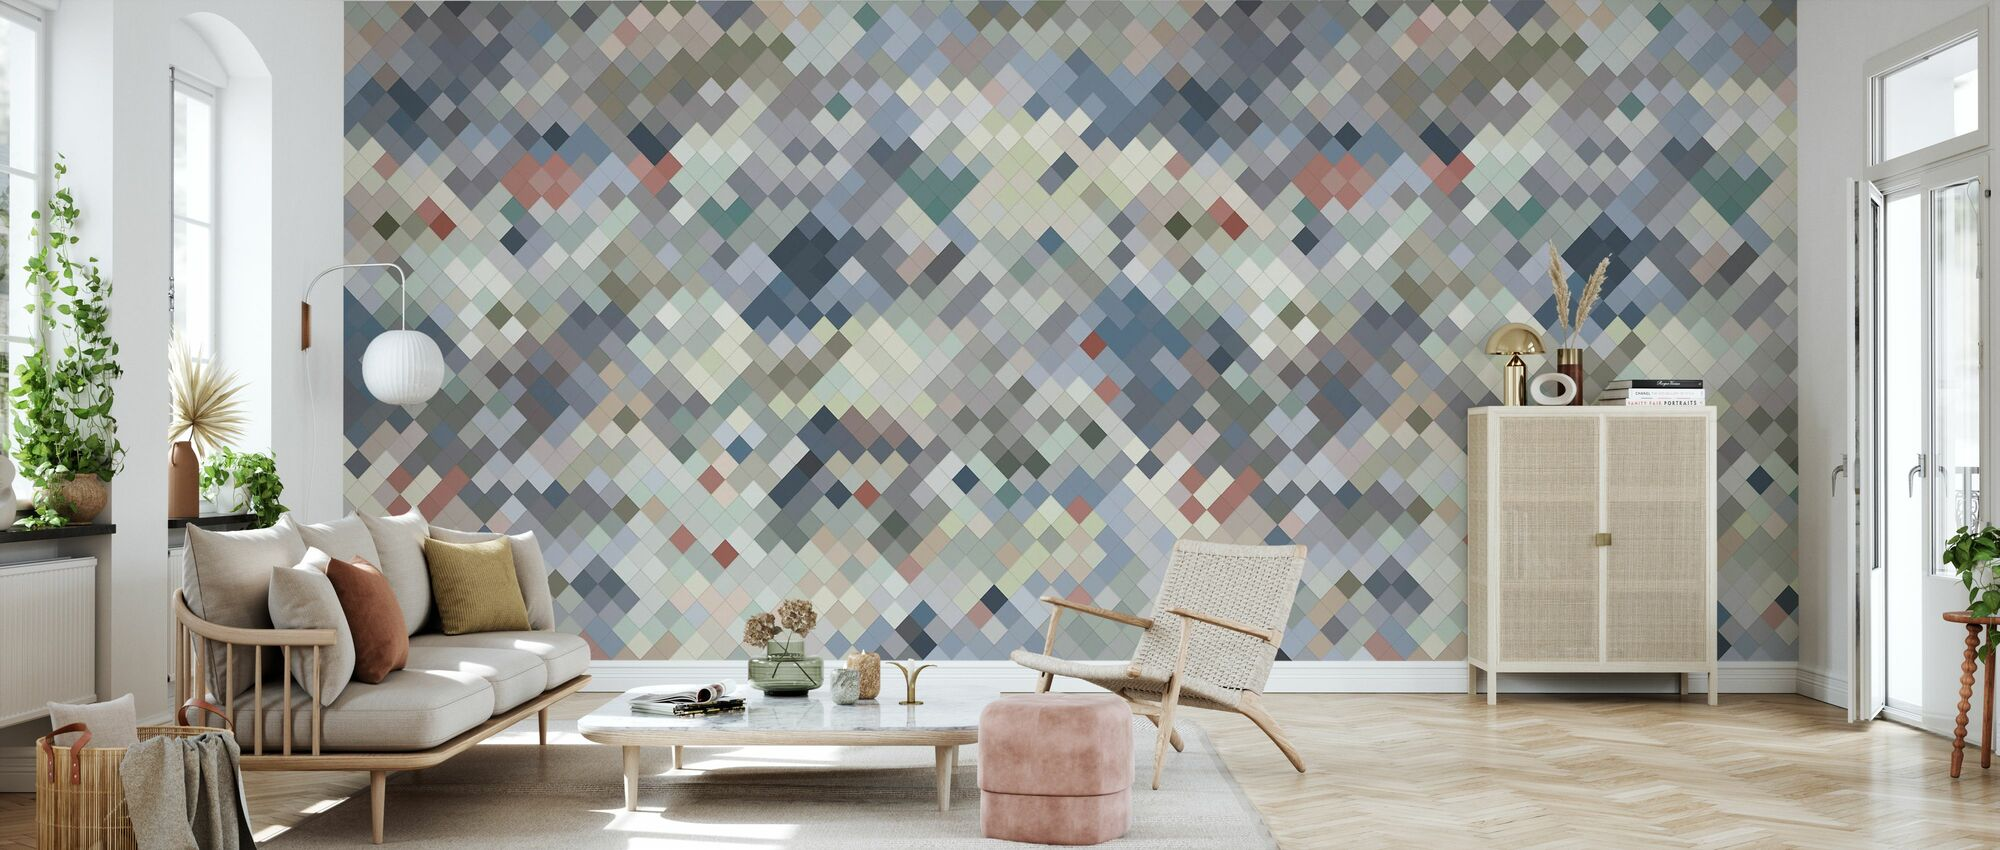 Tile Blue - Wallpaper - Living Room